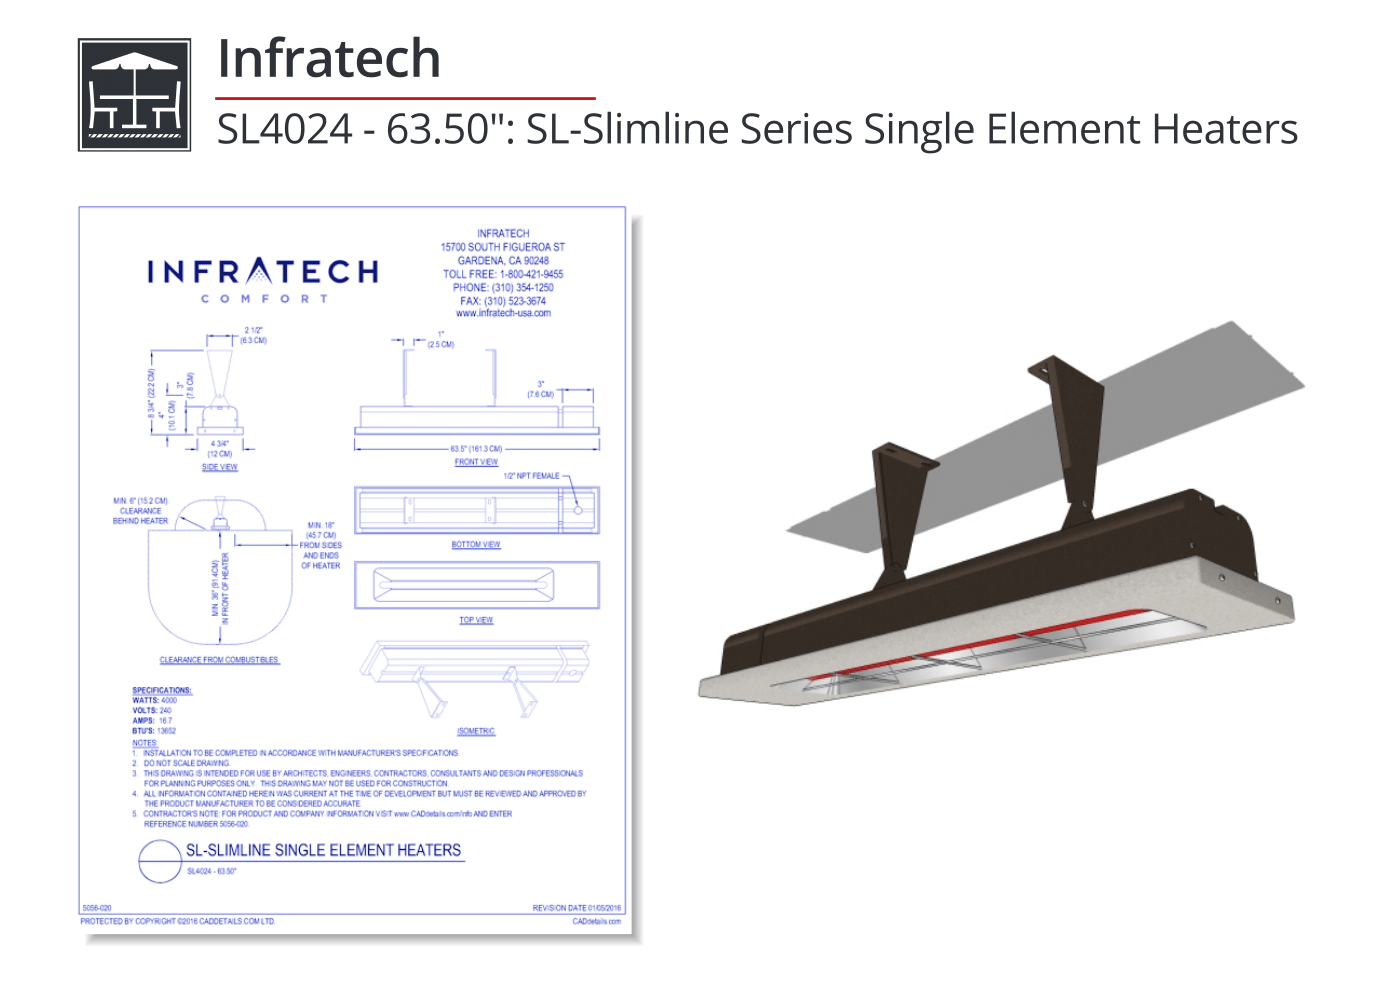 Infratech-SL-Slimline-Series-Single-Element-Heaters-CAD-Drawing.png